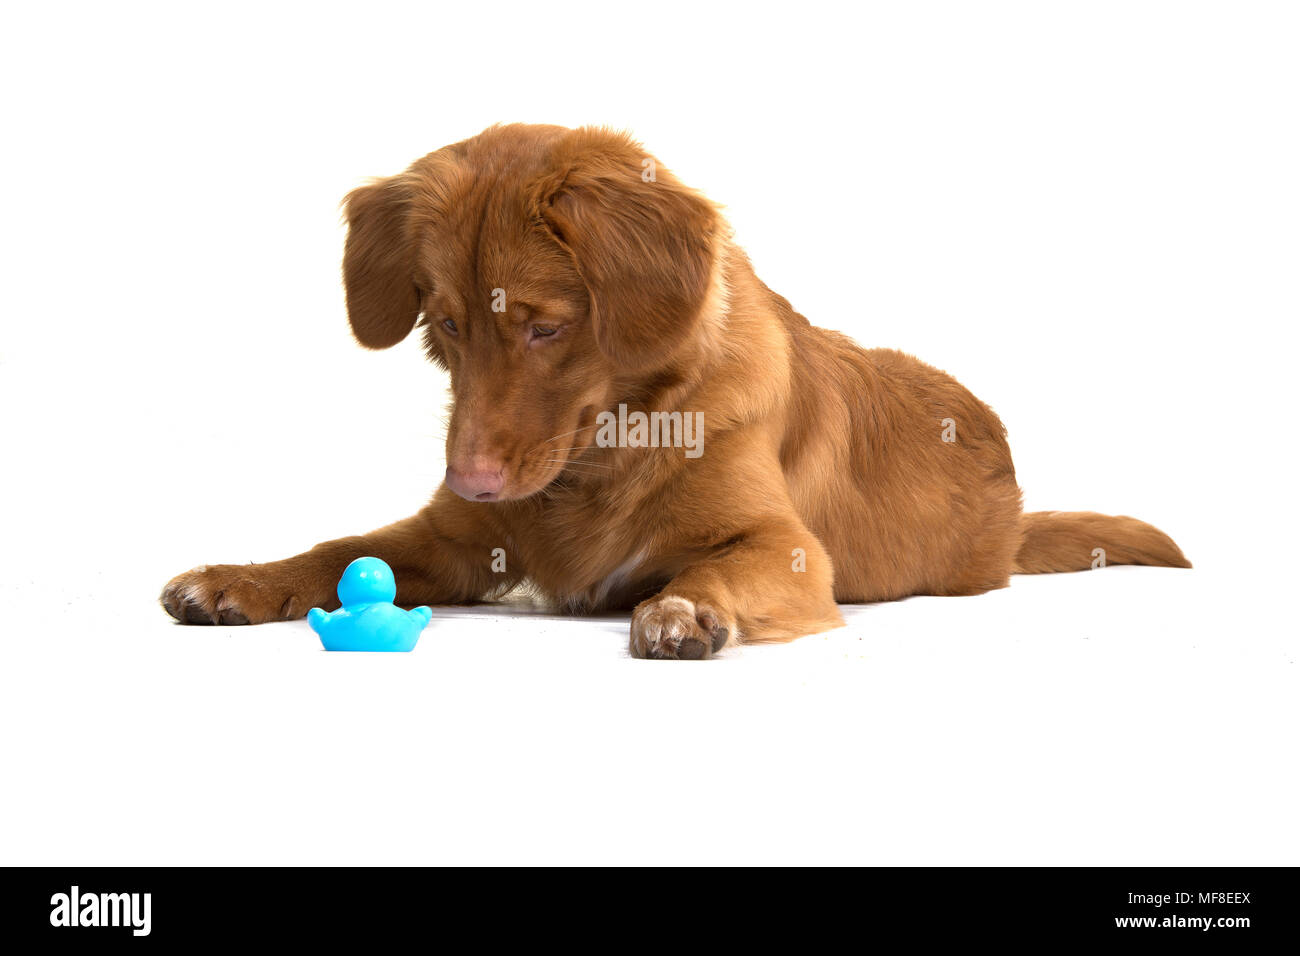 Duck Standing By Rubber Duck Stock Photos & Duck Standing By Rubber ...